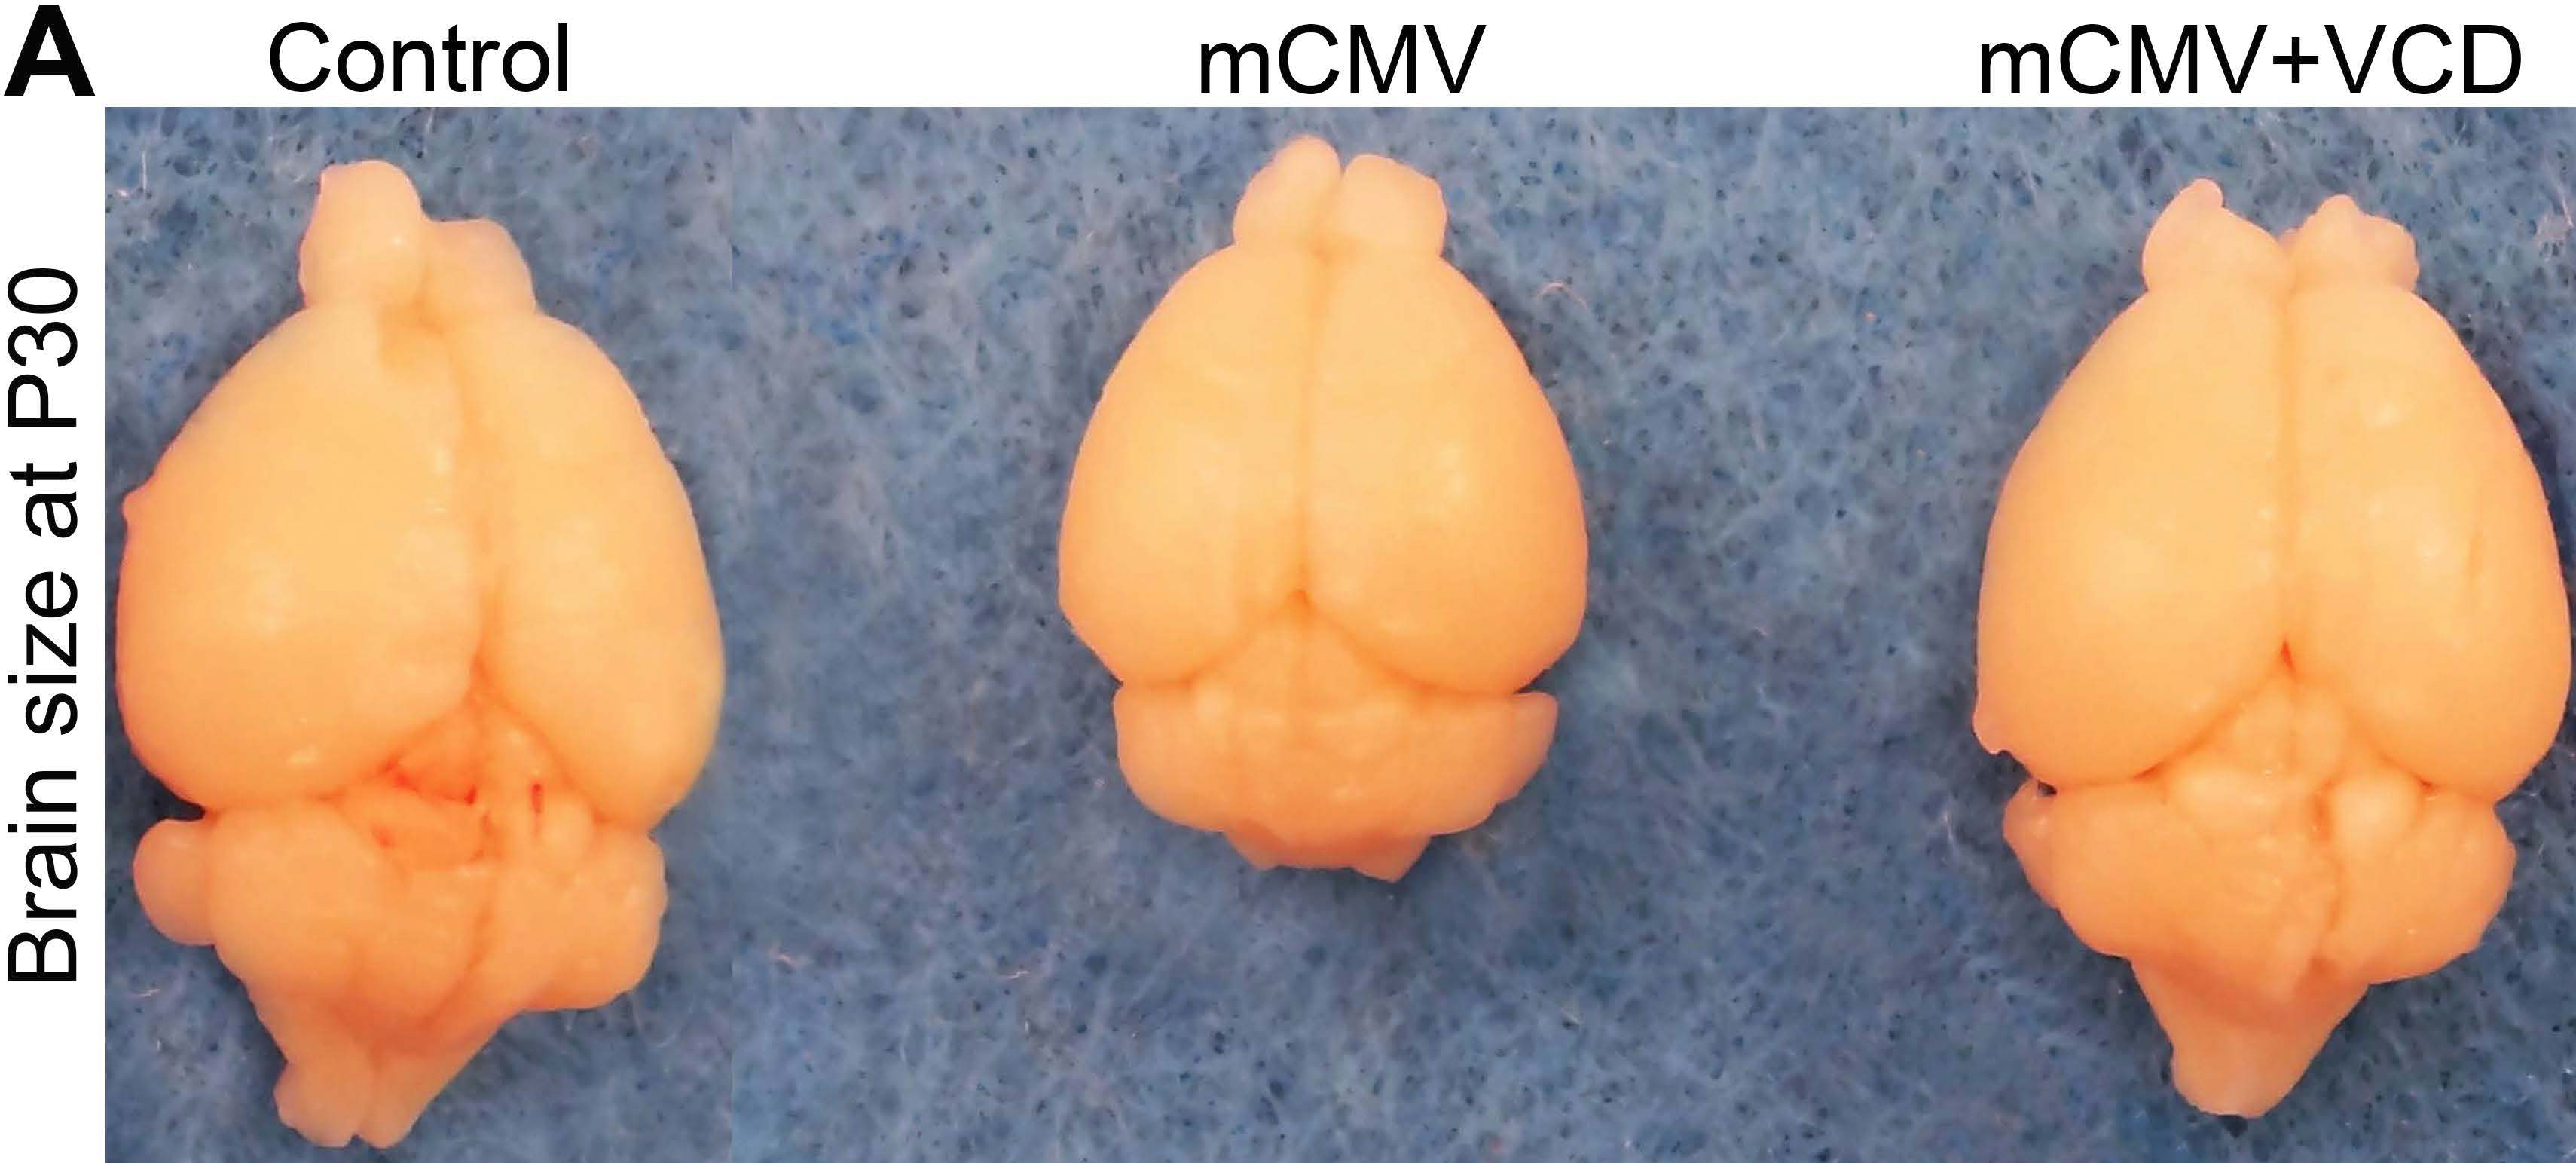 Valnoctamide Reverses Deficient Brain Growth Induced by mCMV Infection